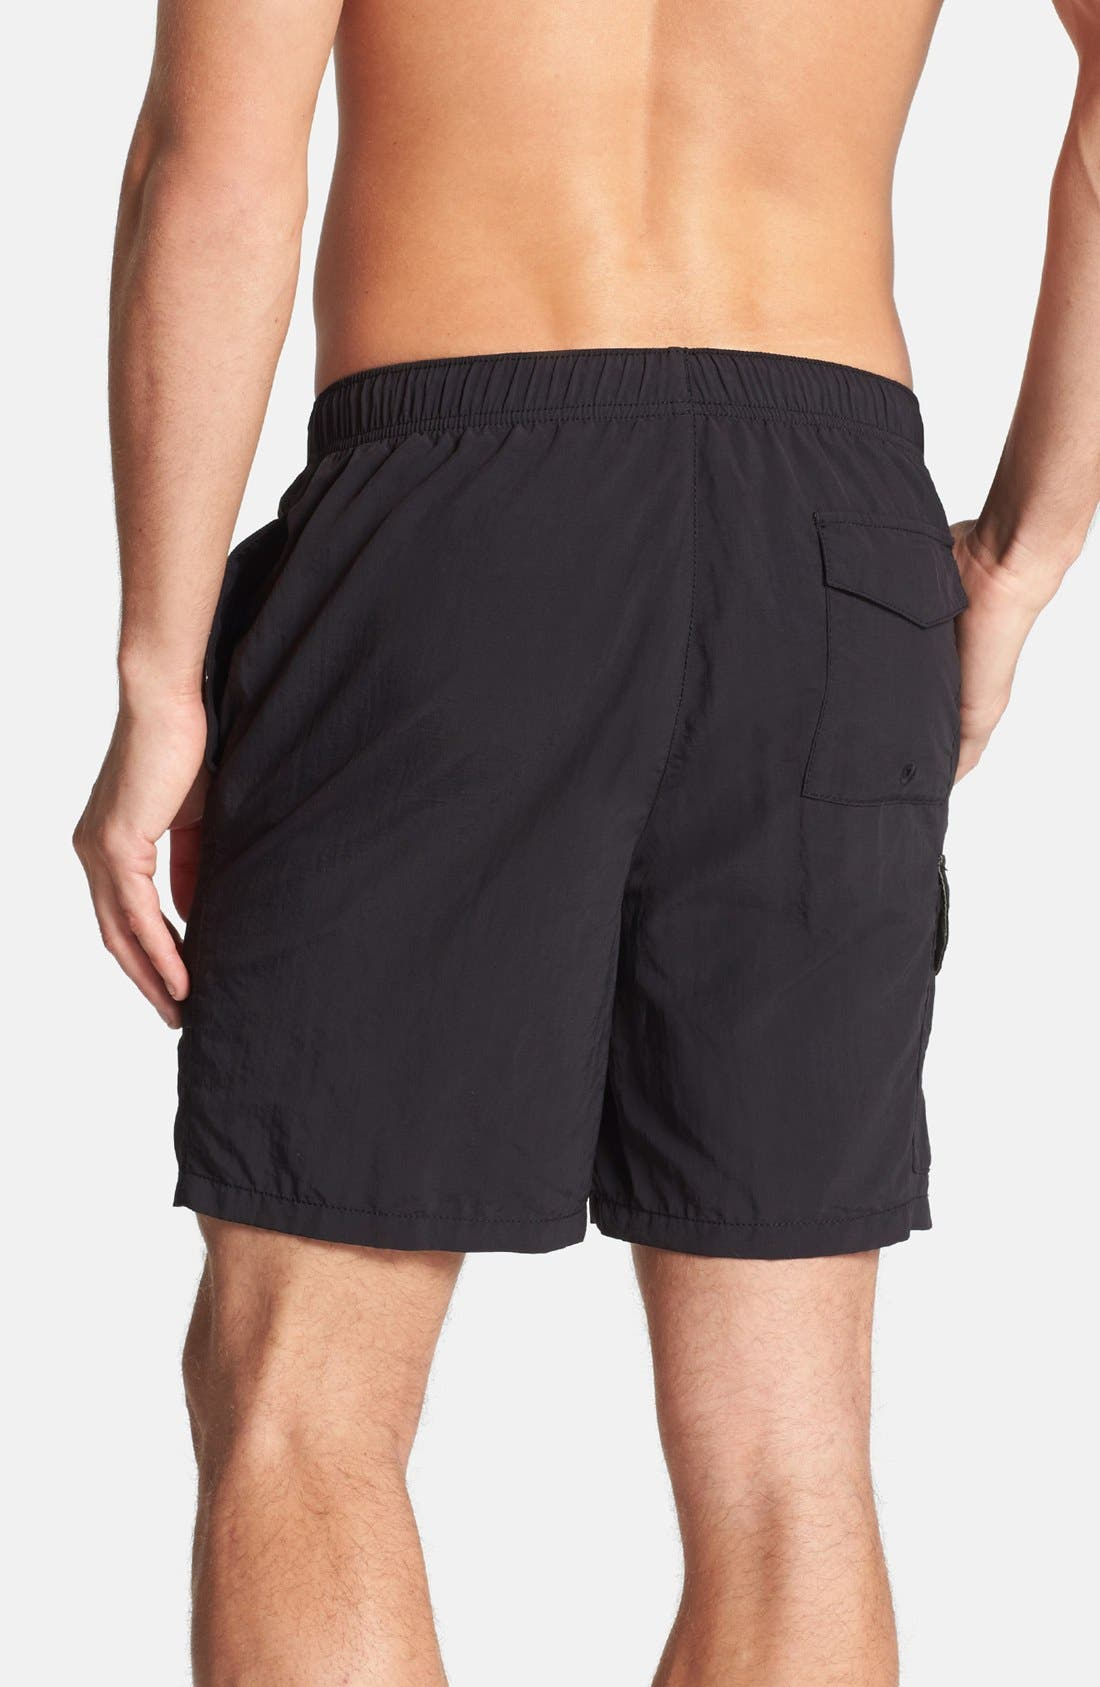 Naples Happy Go Cargo Swim Trunks,                             Alternate thumbnail 2, color,                             Black